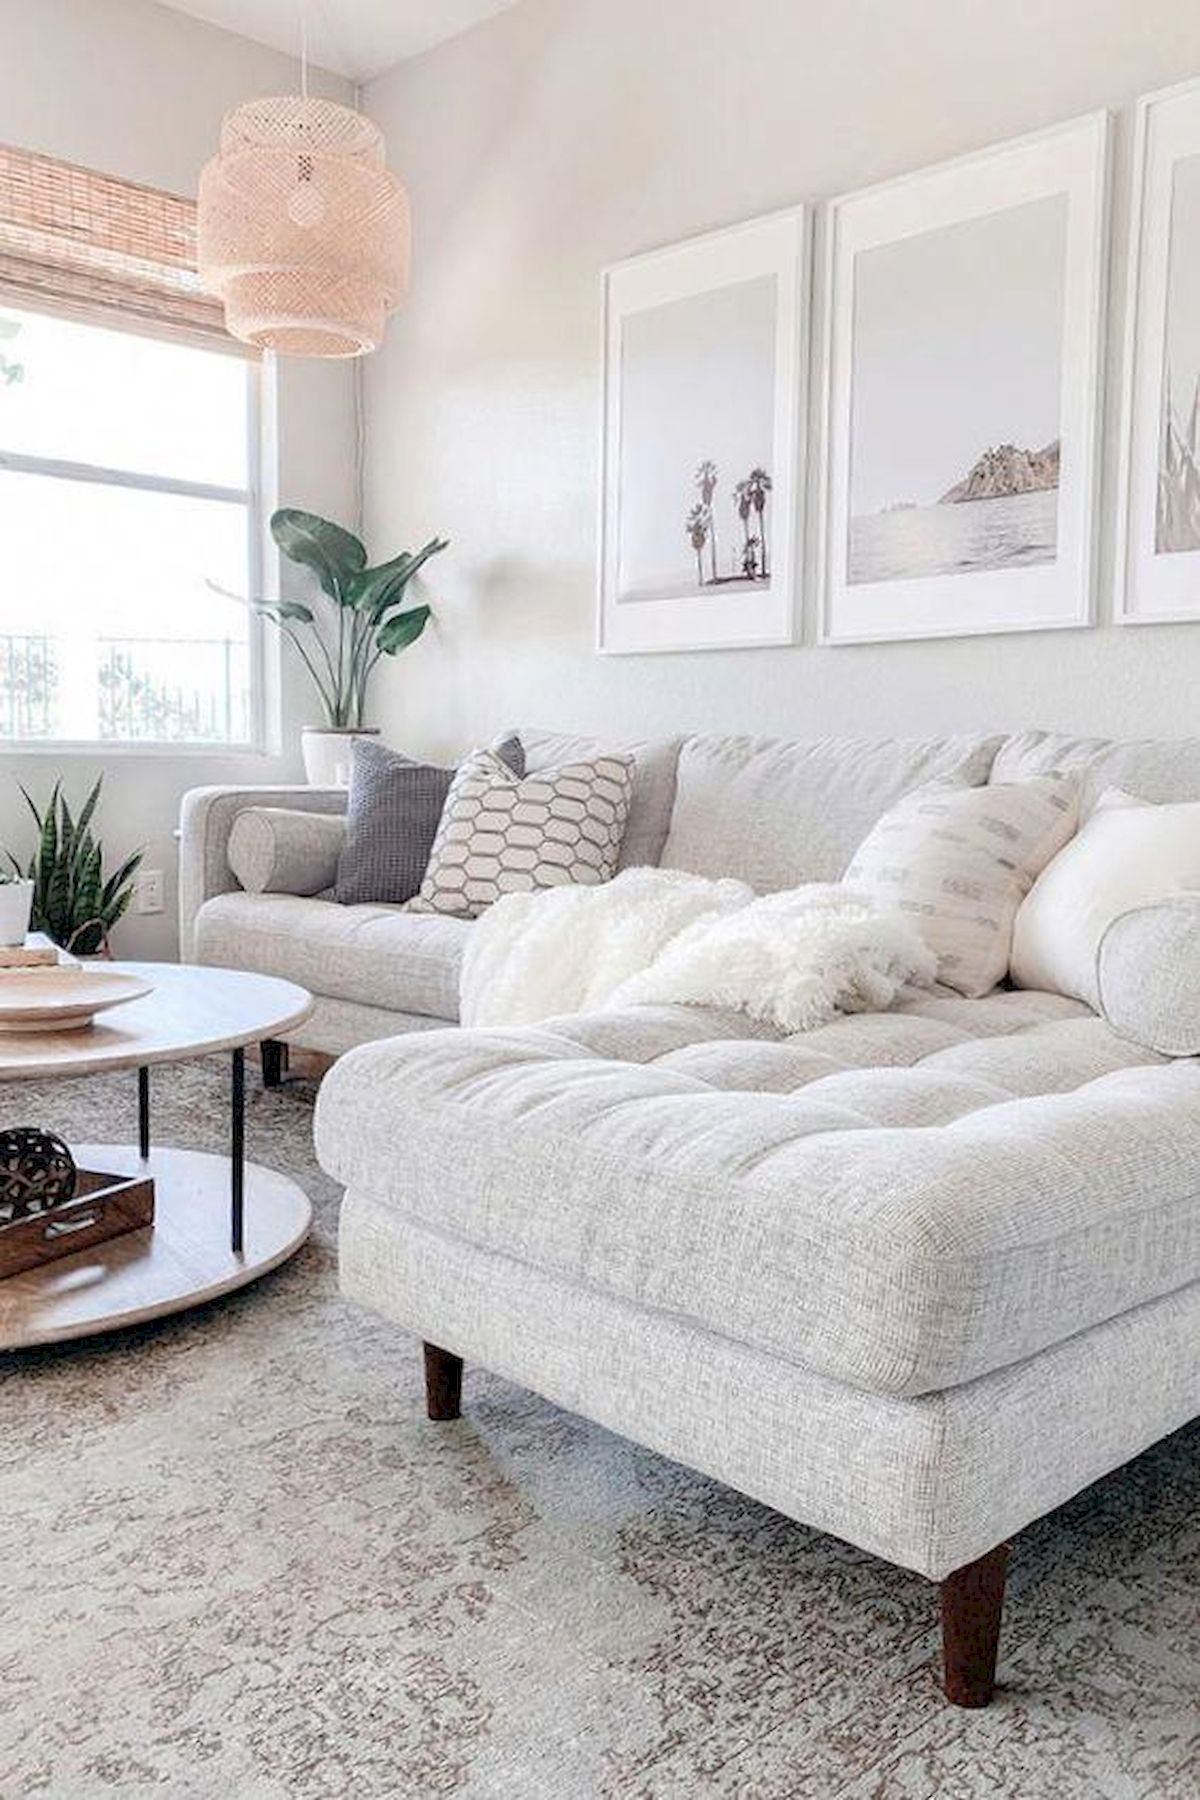 45 Brilliant Diy Living Room Design And Decor Ideas For Small Apartment In 2020 Apartment Living Room Interior Design Living Room Farm House Living Room